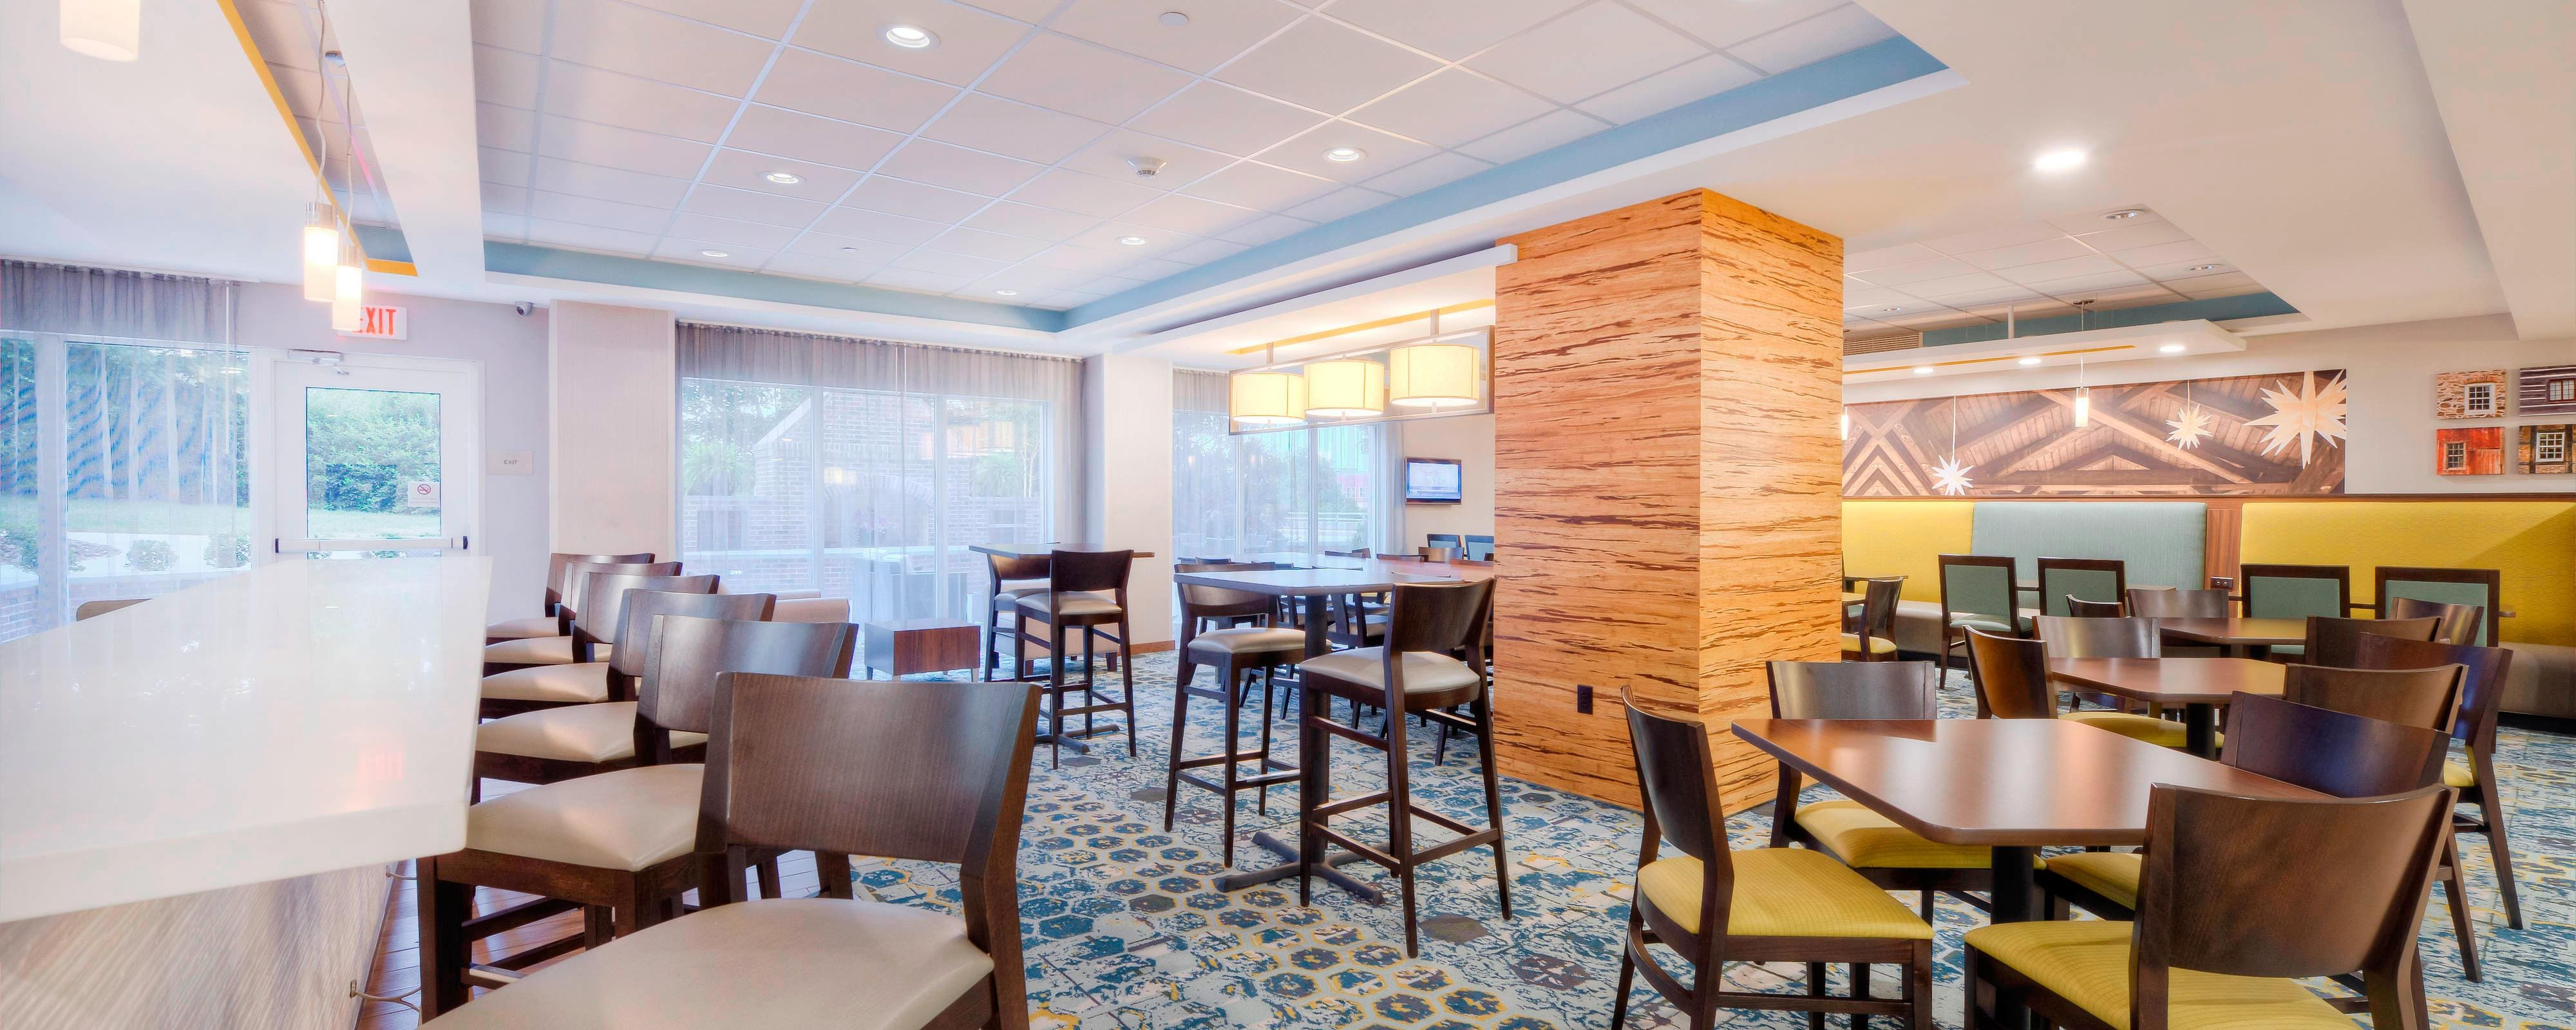 Hotel Dining Restaurants Fairfield Inn Suites Winston